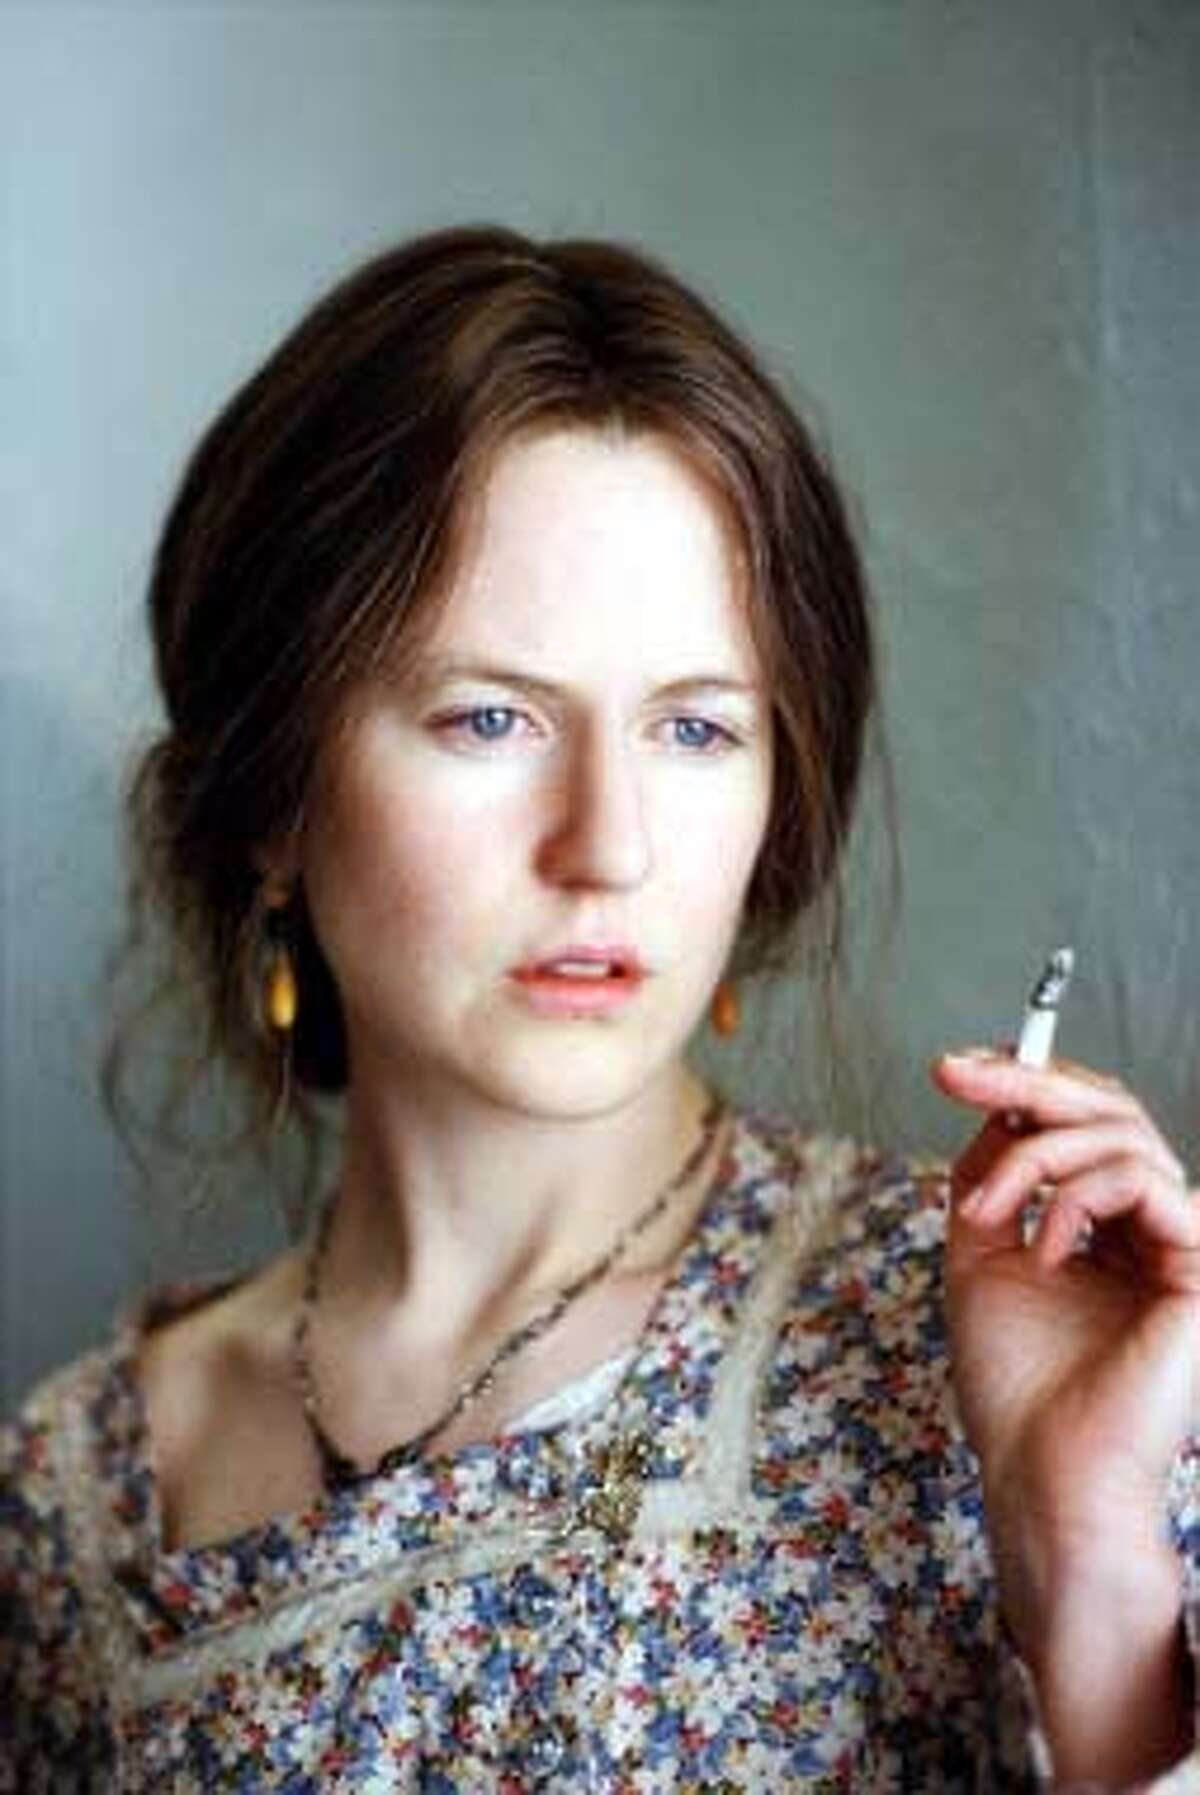 Nicole Kidman as Virginia Woolf in